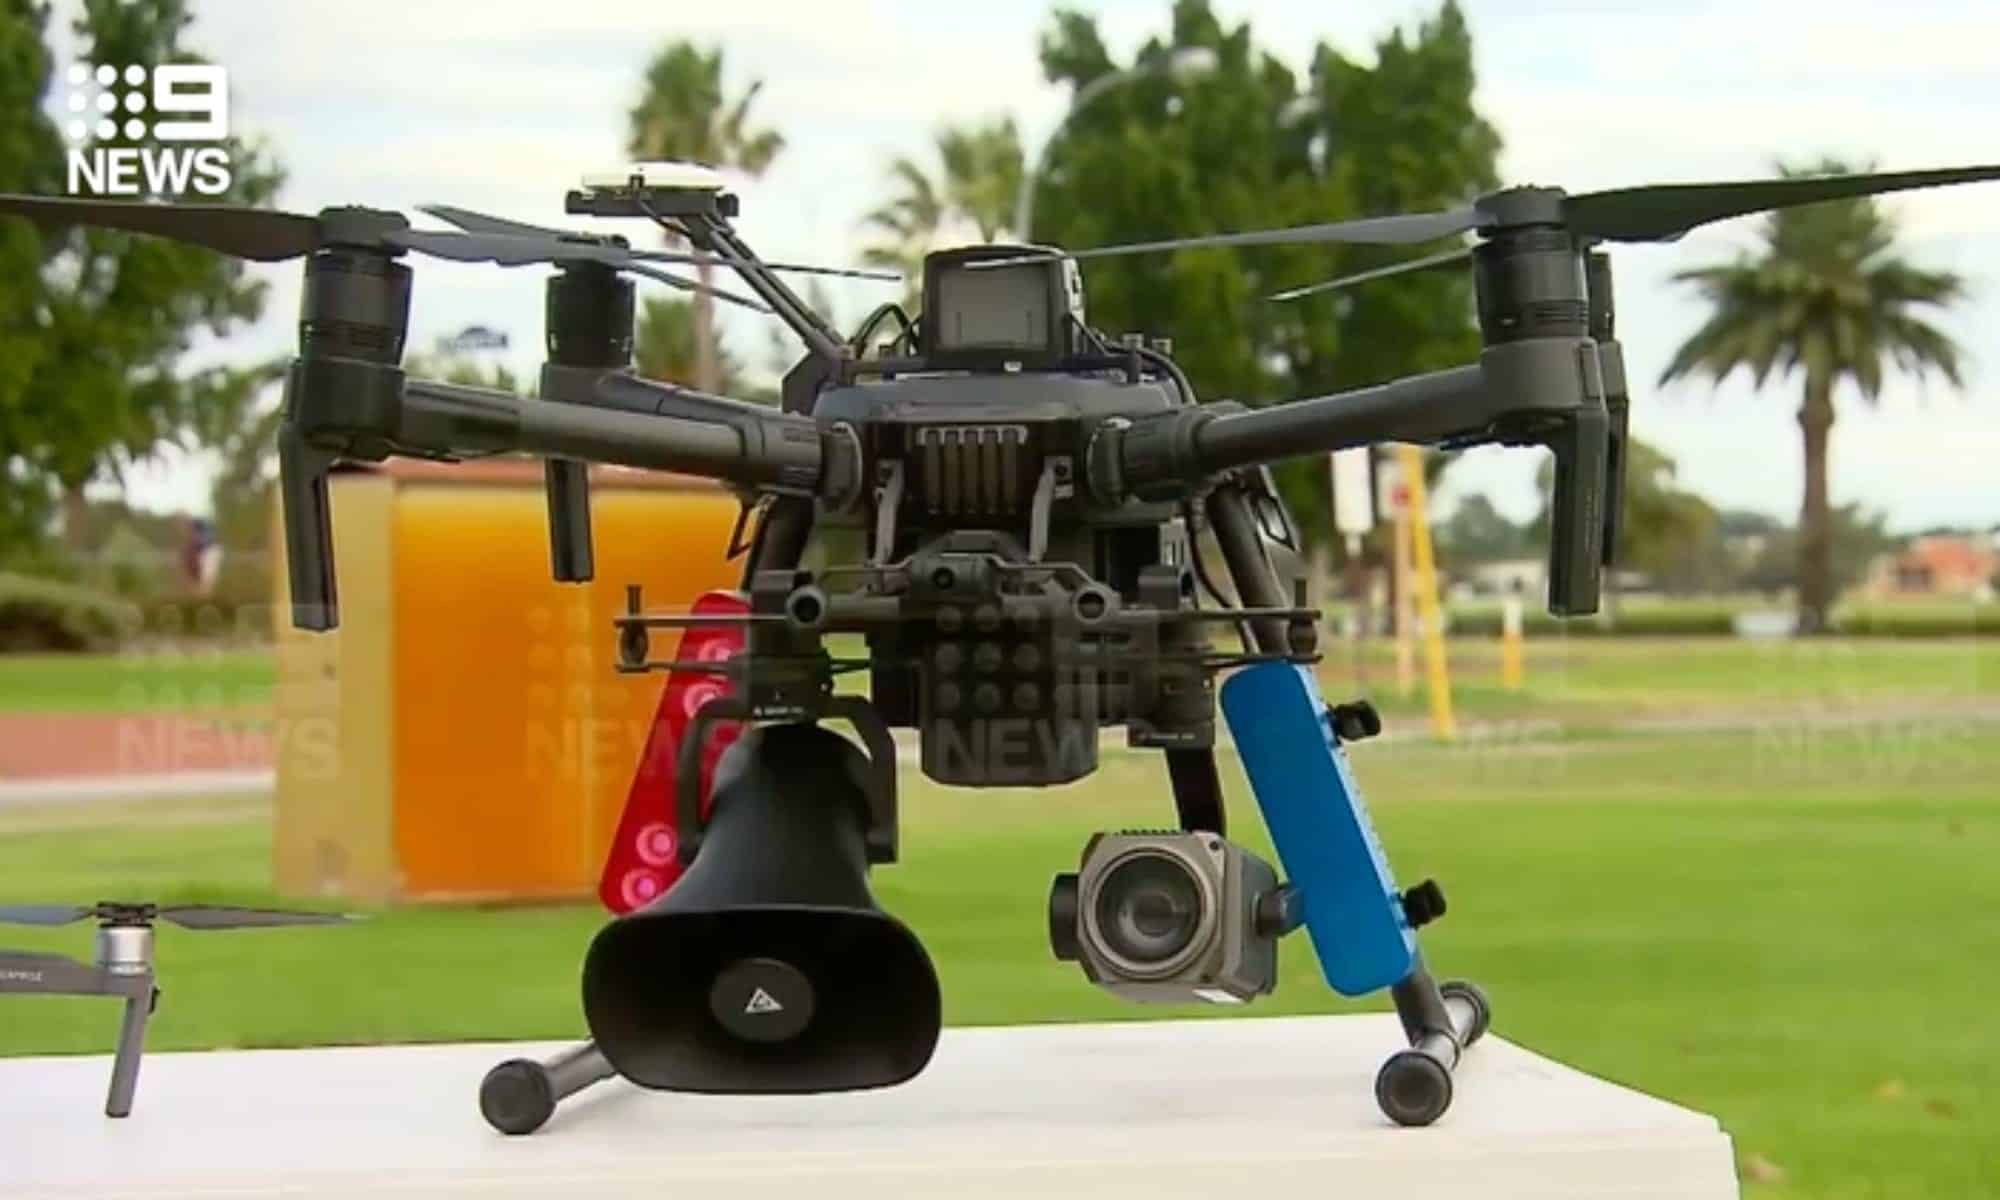 Police around the world are using drones to warn public of Coronavirus